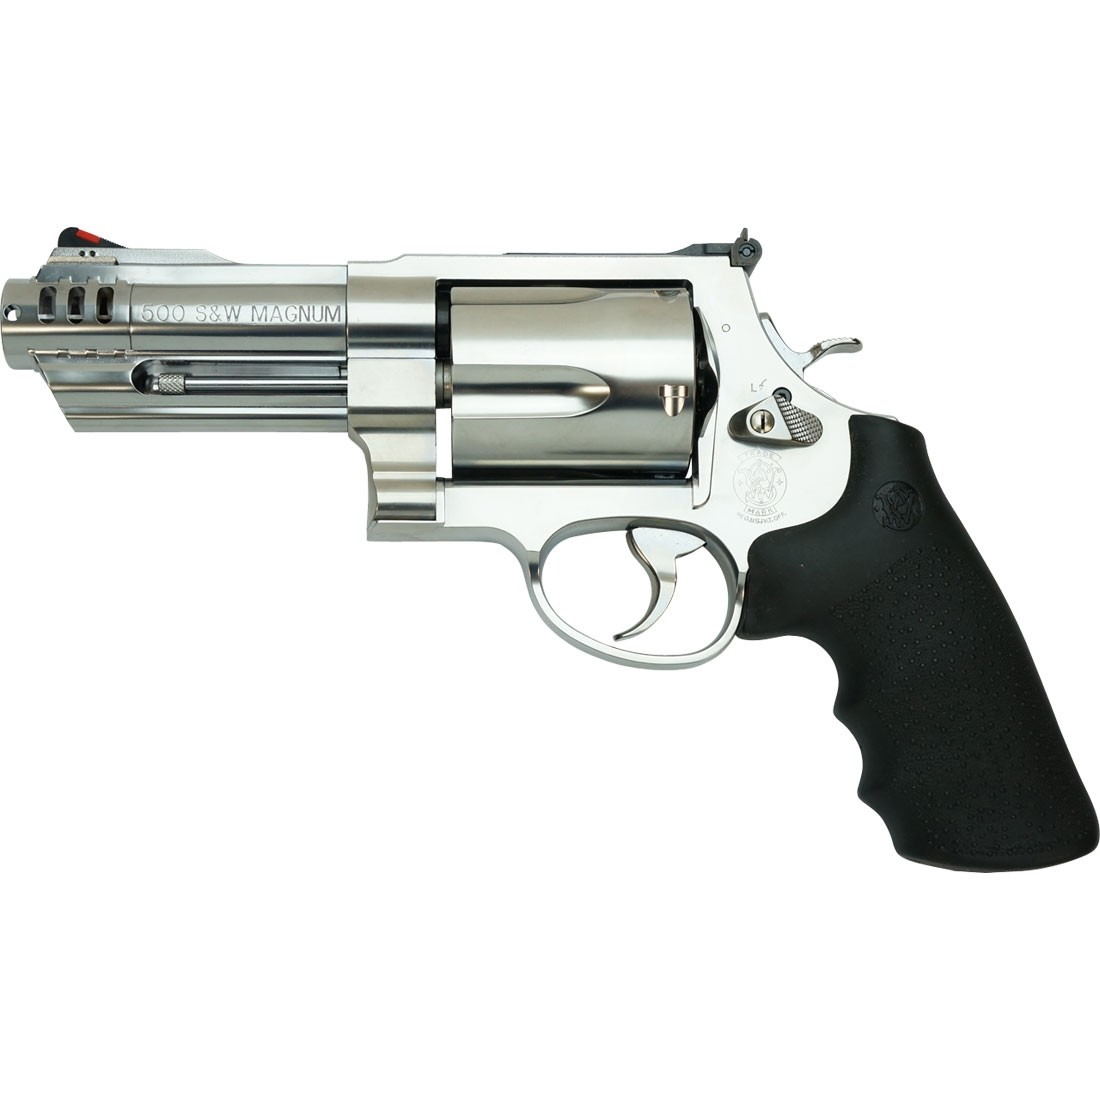 Tanaka S&W M500 3 inch Plus 1 inch Stainless Compensator Airsoft Revolver